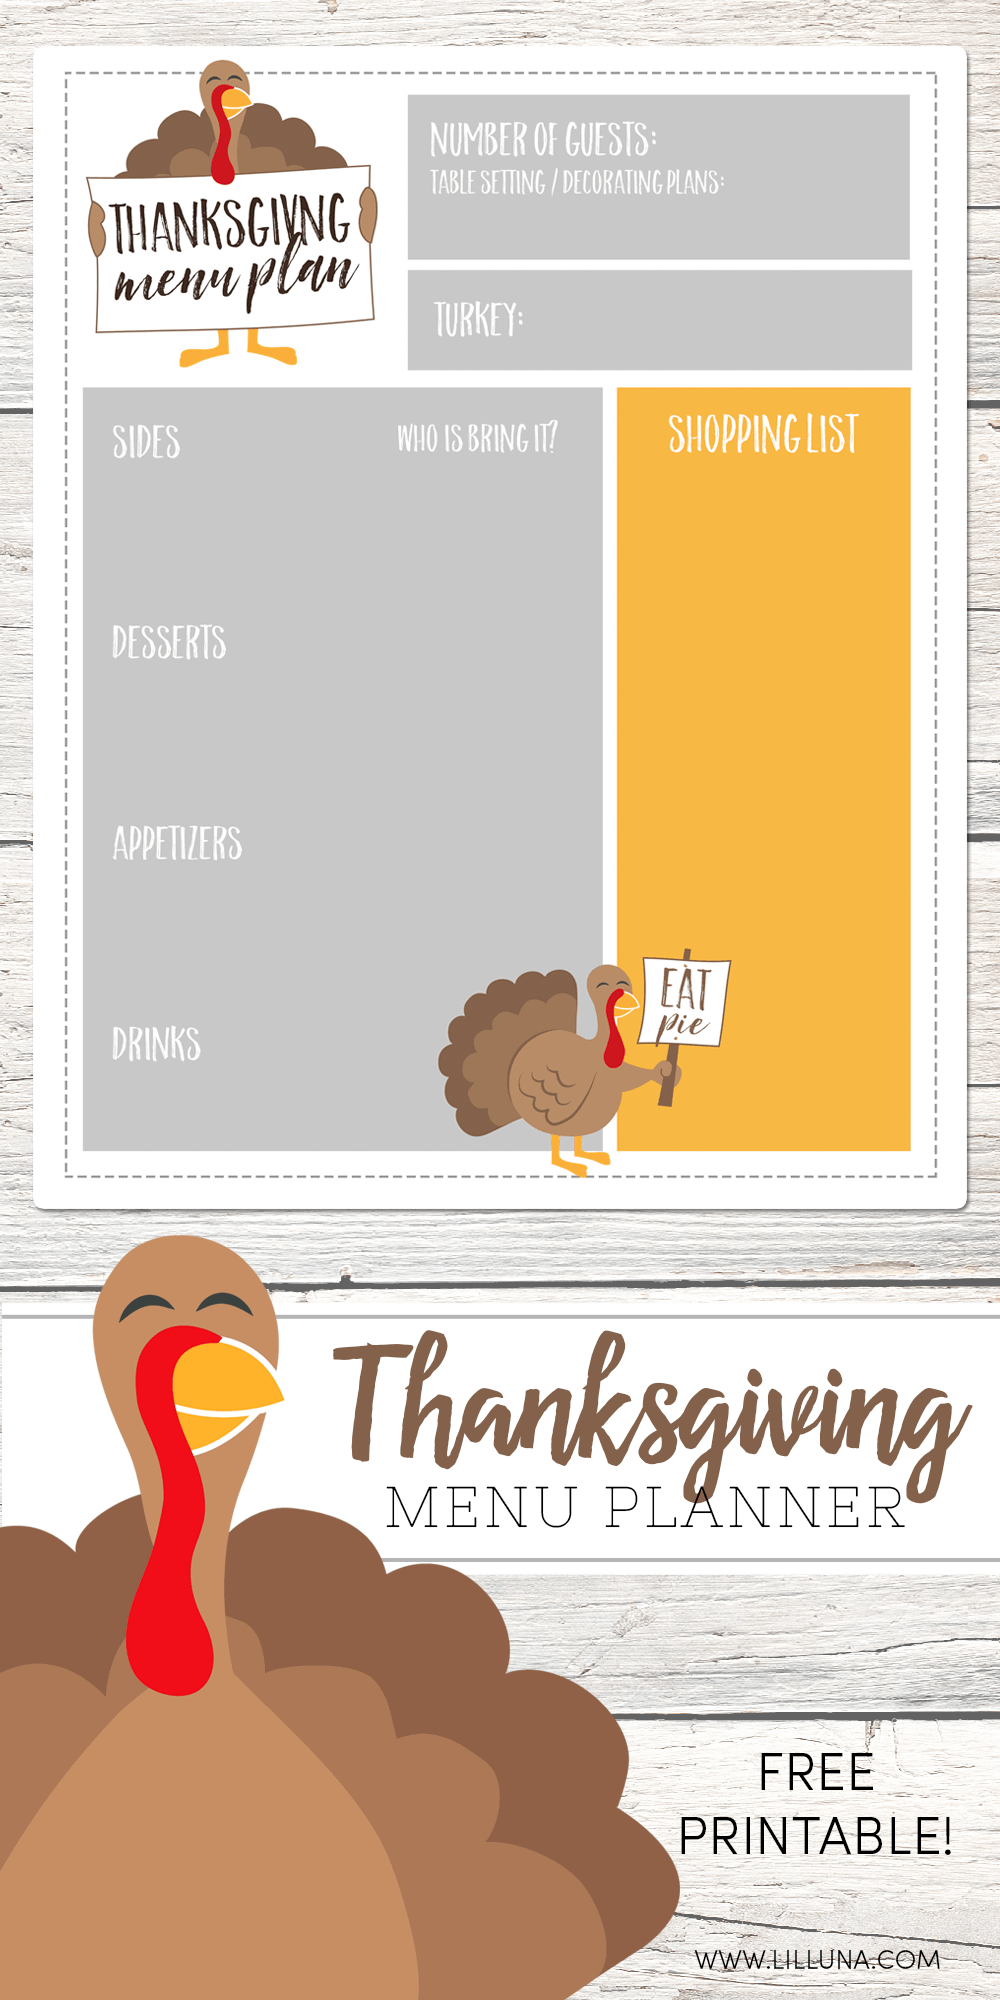 photograph regarding Thanksgiving Menu Planner Printable named Totally free Thanksgiving Menu Planner Lil Luna